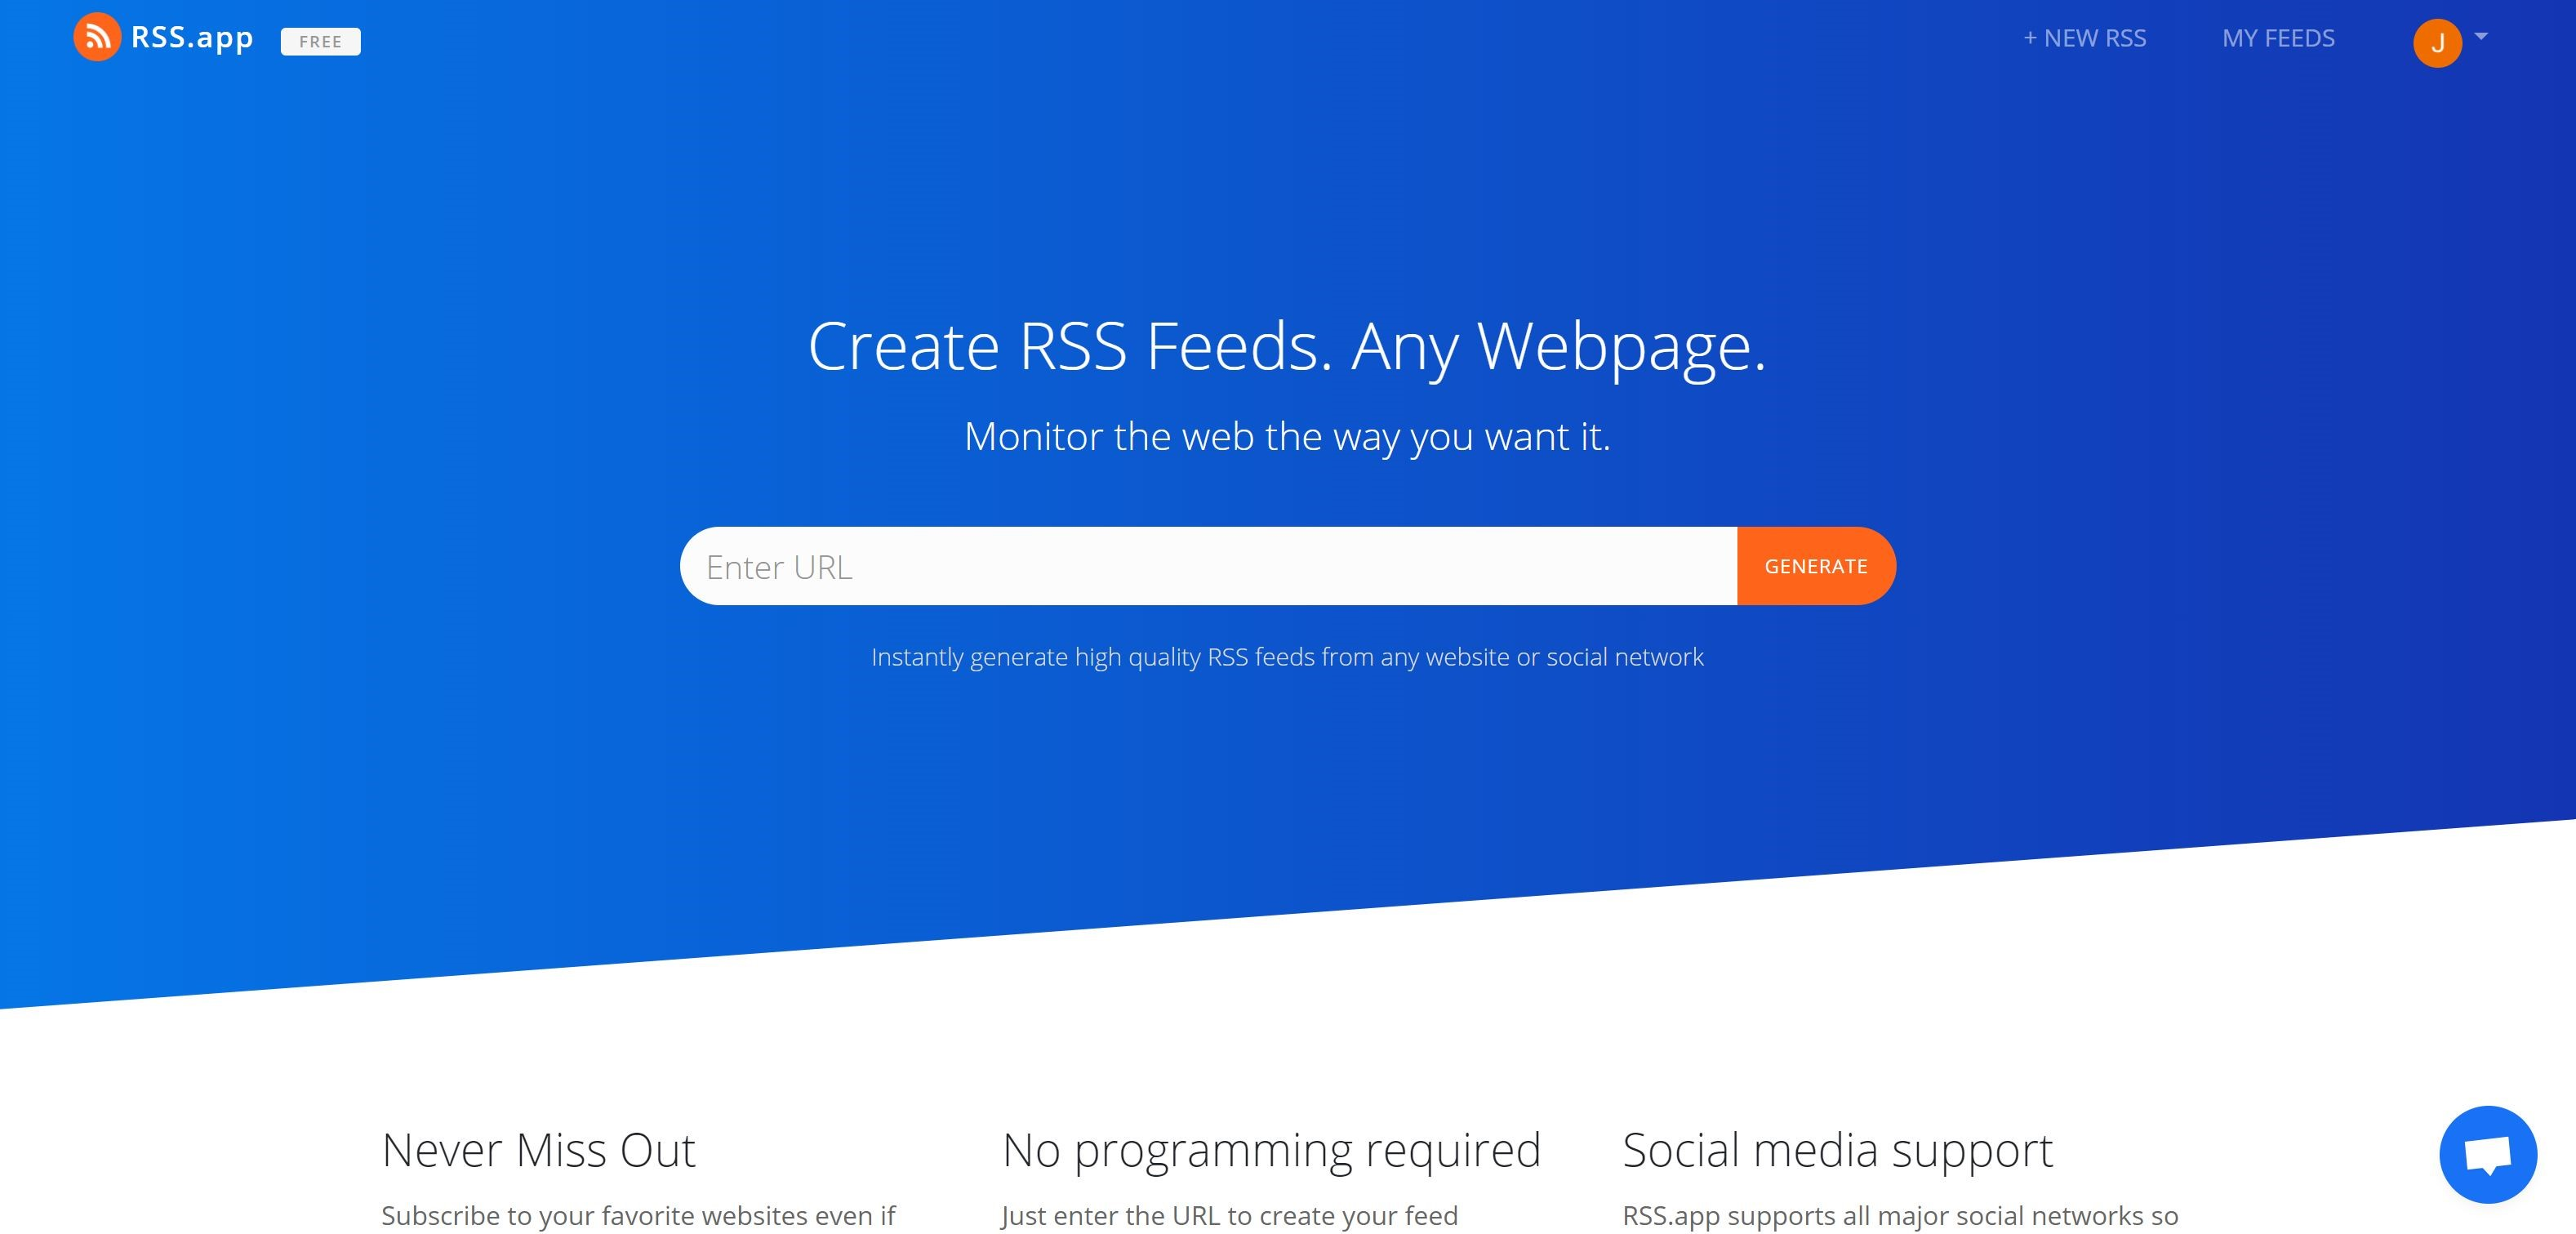 RSS app Alternatives and Similar Websites and Apps